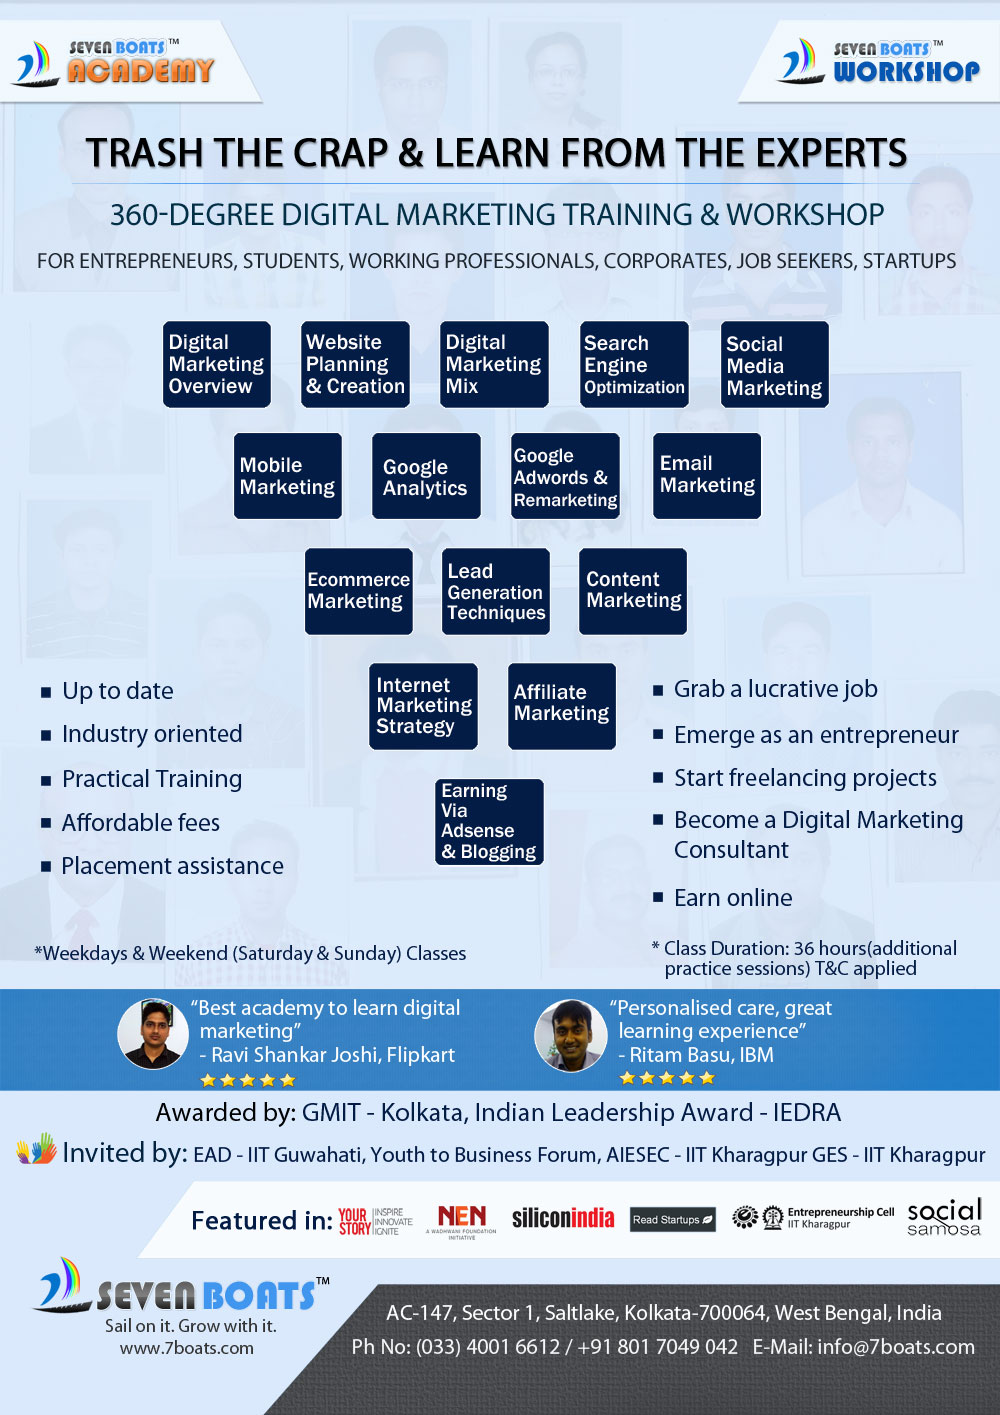 Learn everything you need to know about starting your own seo & web design business as a digital marketer. Digital Marketing Training in Kolkata & Hyderabad ...